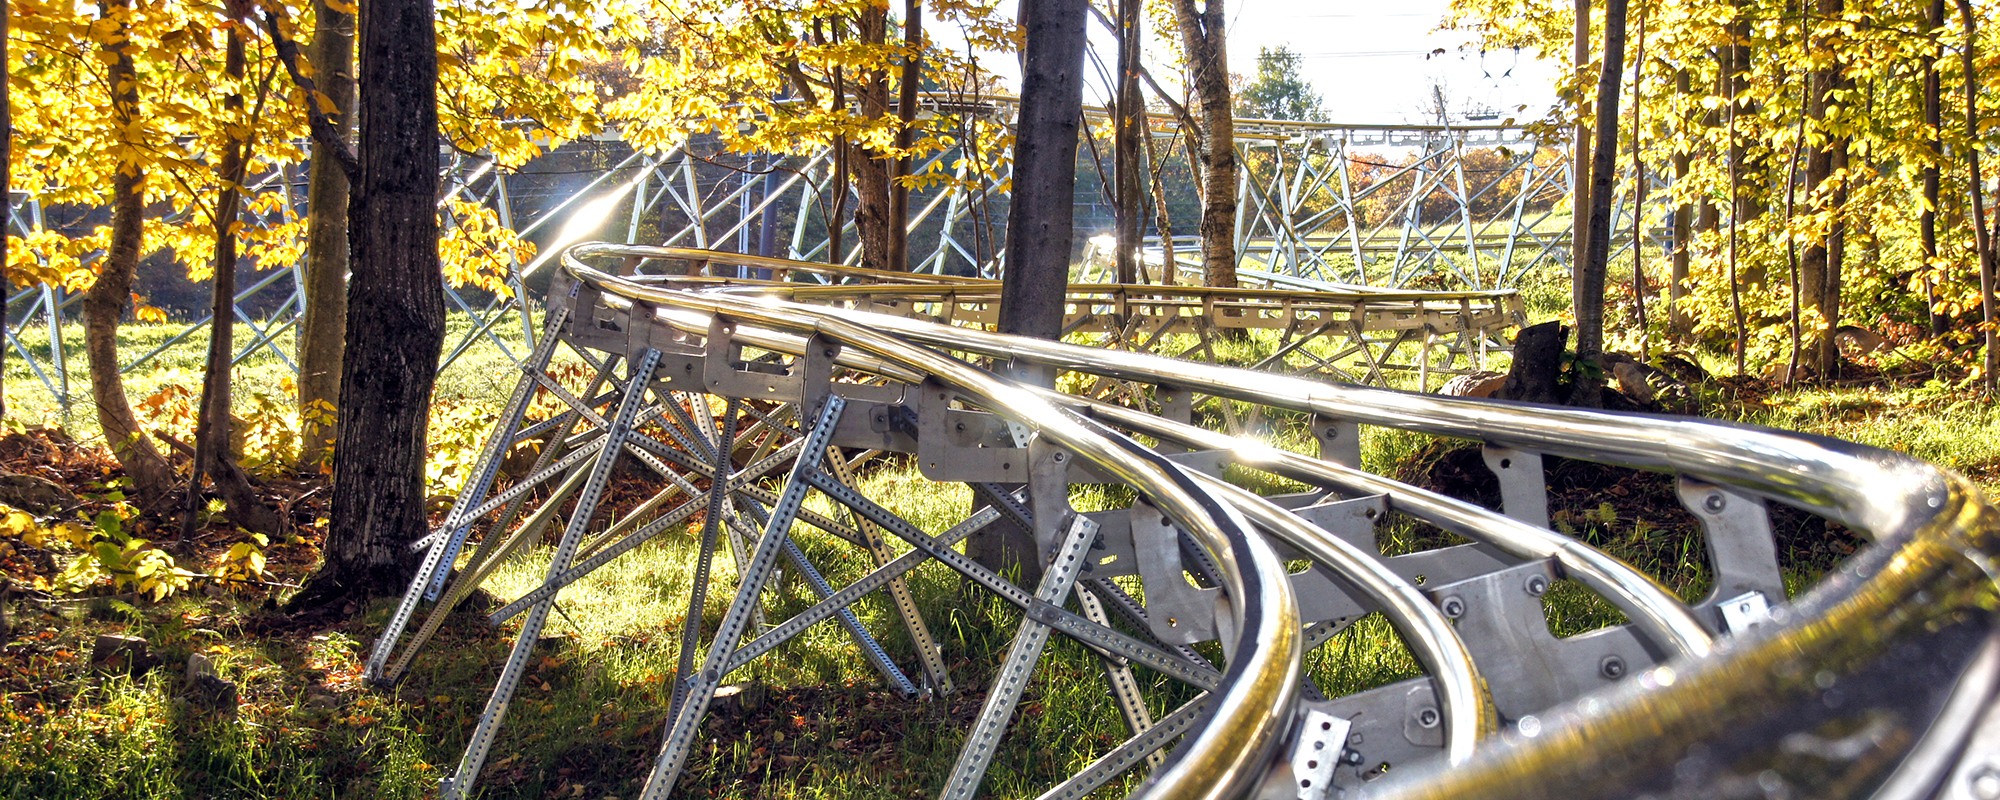 Mountain Coaster Tracks winding through trees with yellow leaves